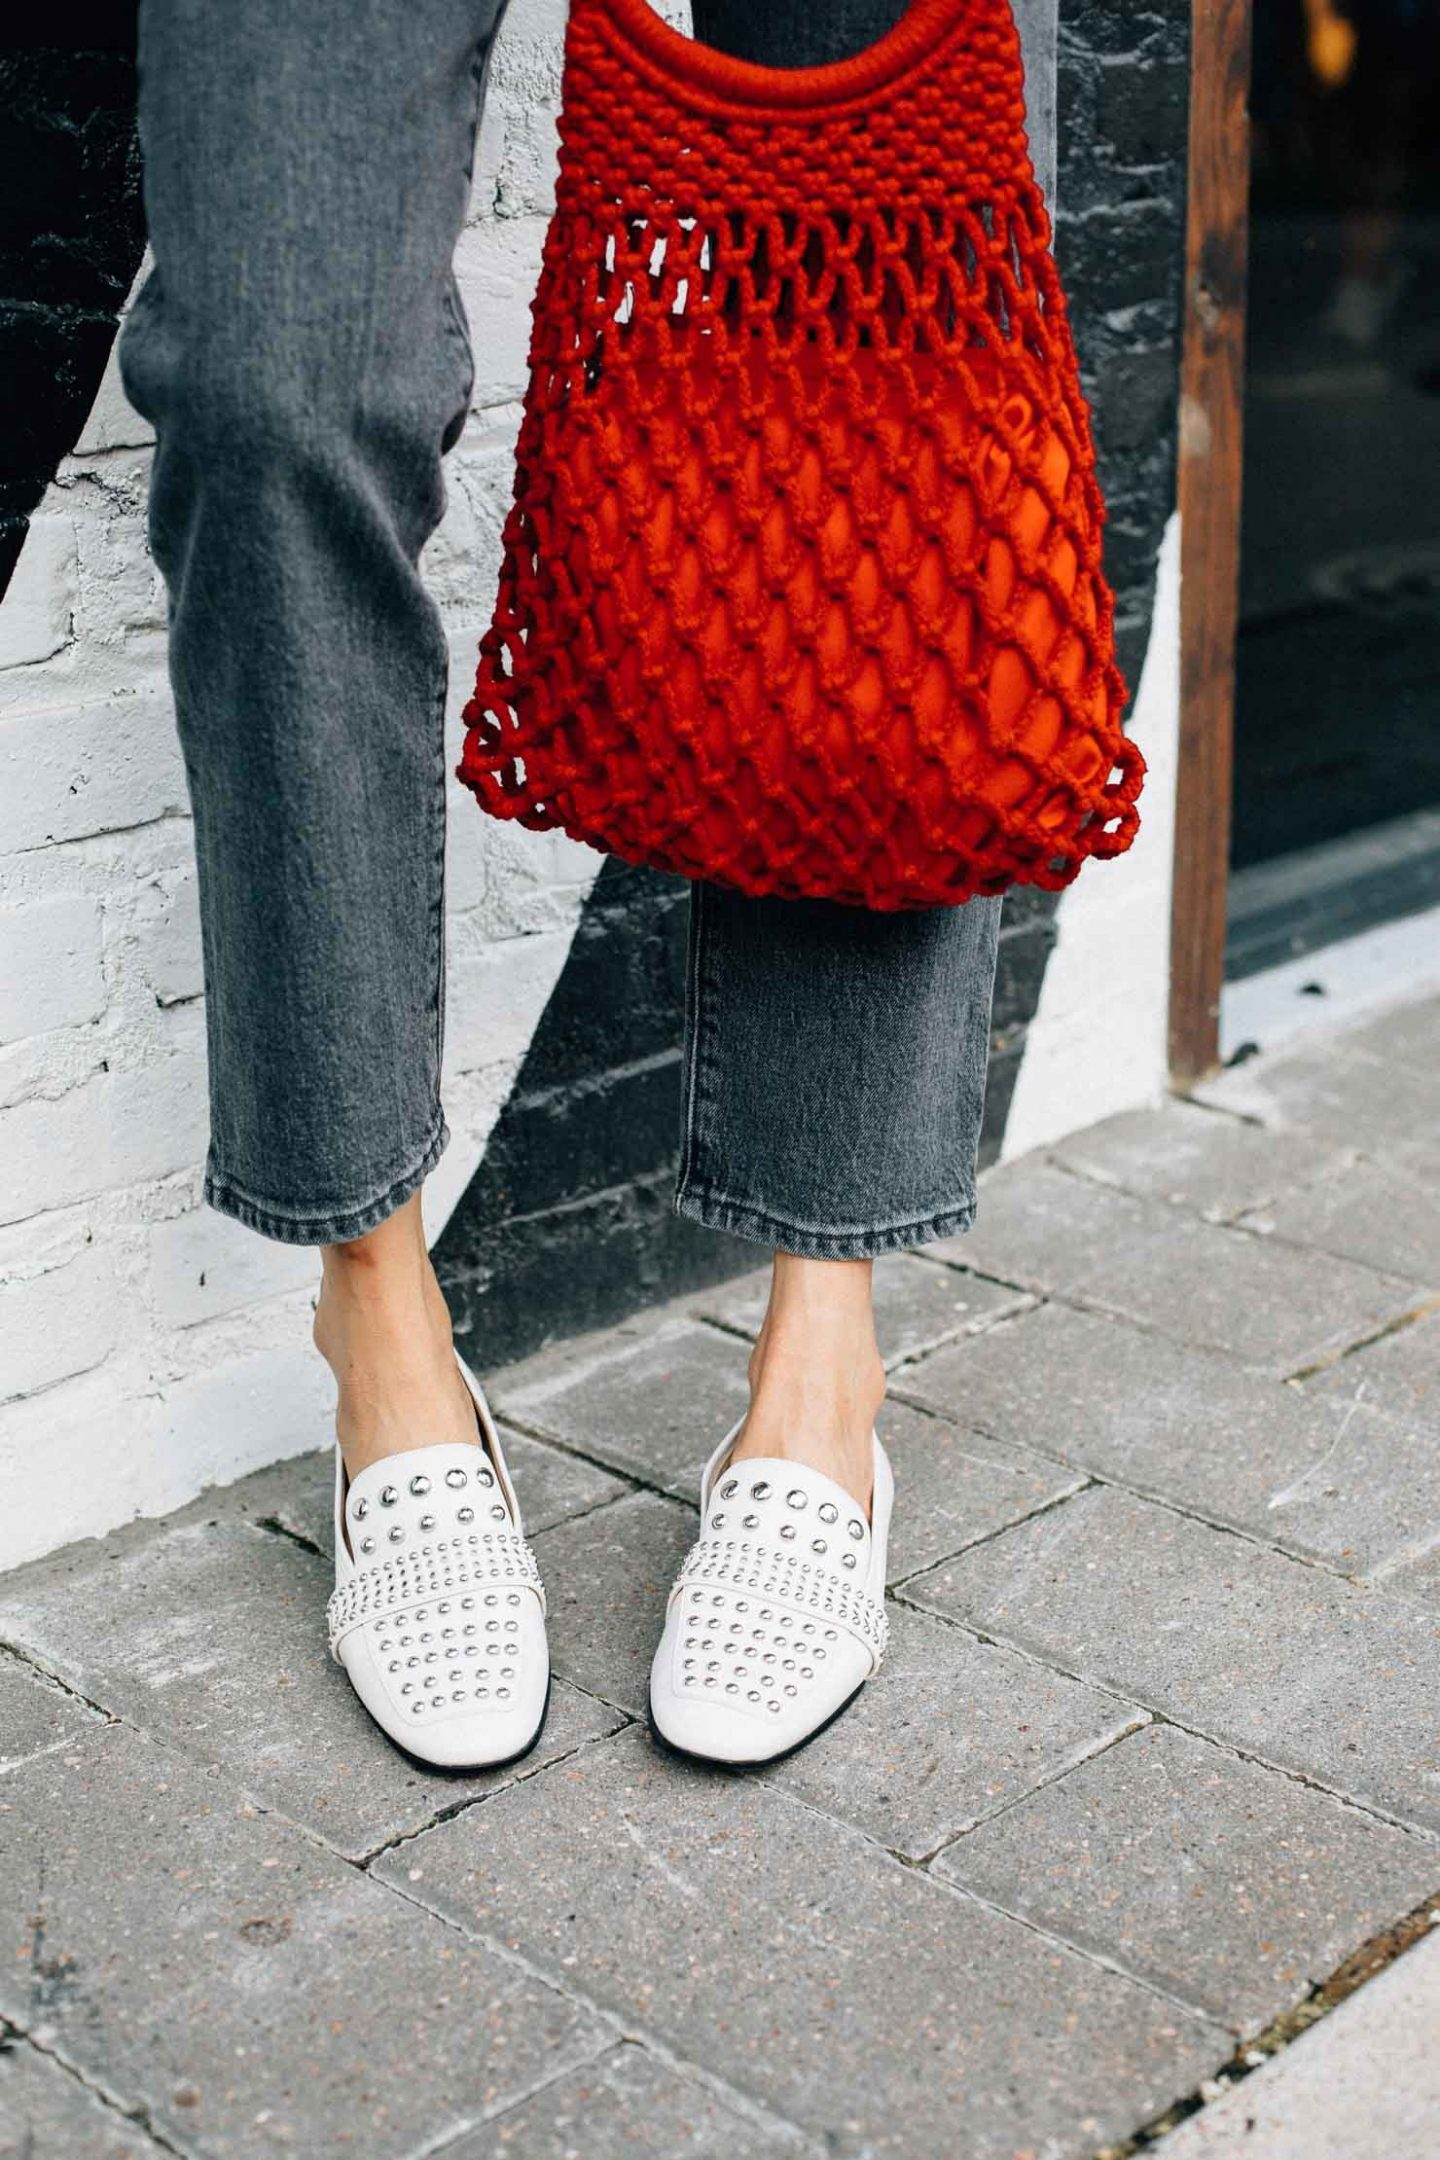 Sam Edelman studded loafers | Street styles to copy now | Lilly Beltran, Houston lifestyle blogger | Street Style